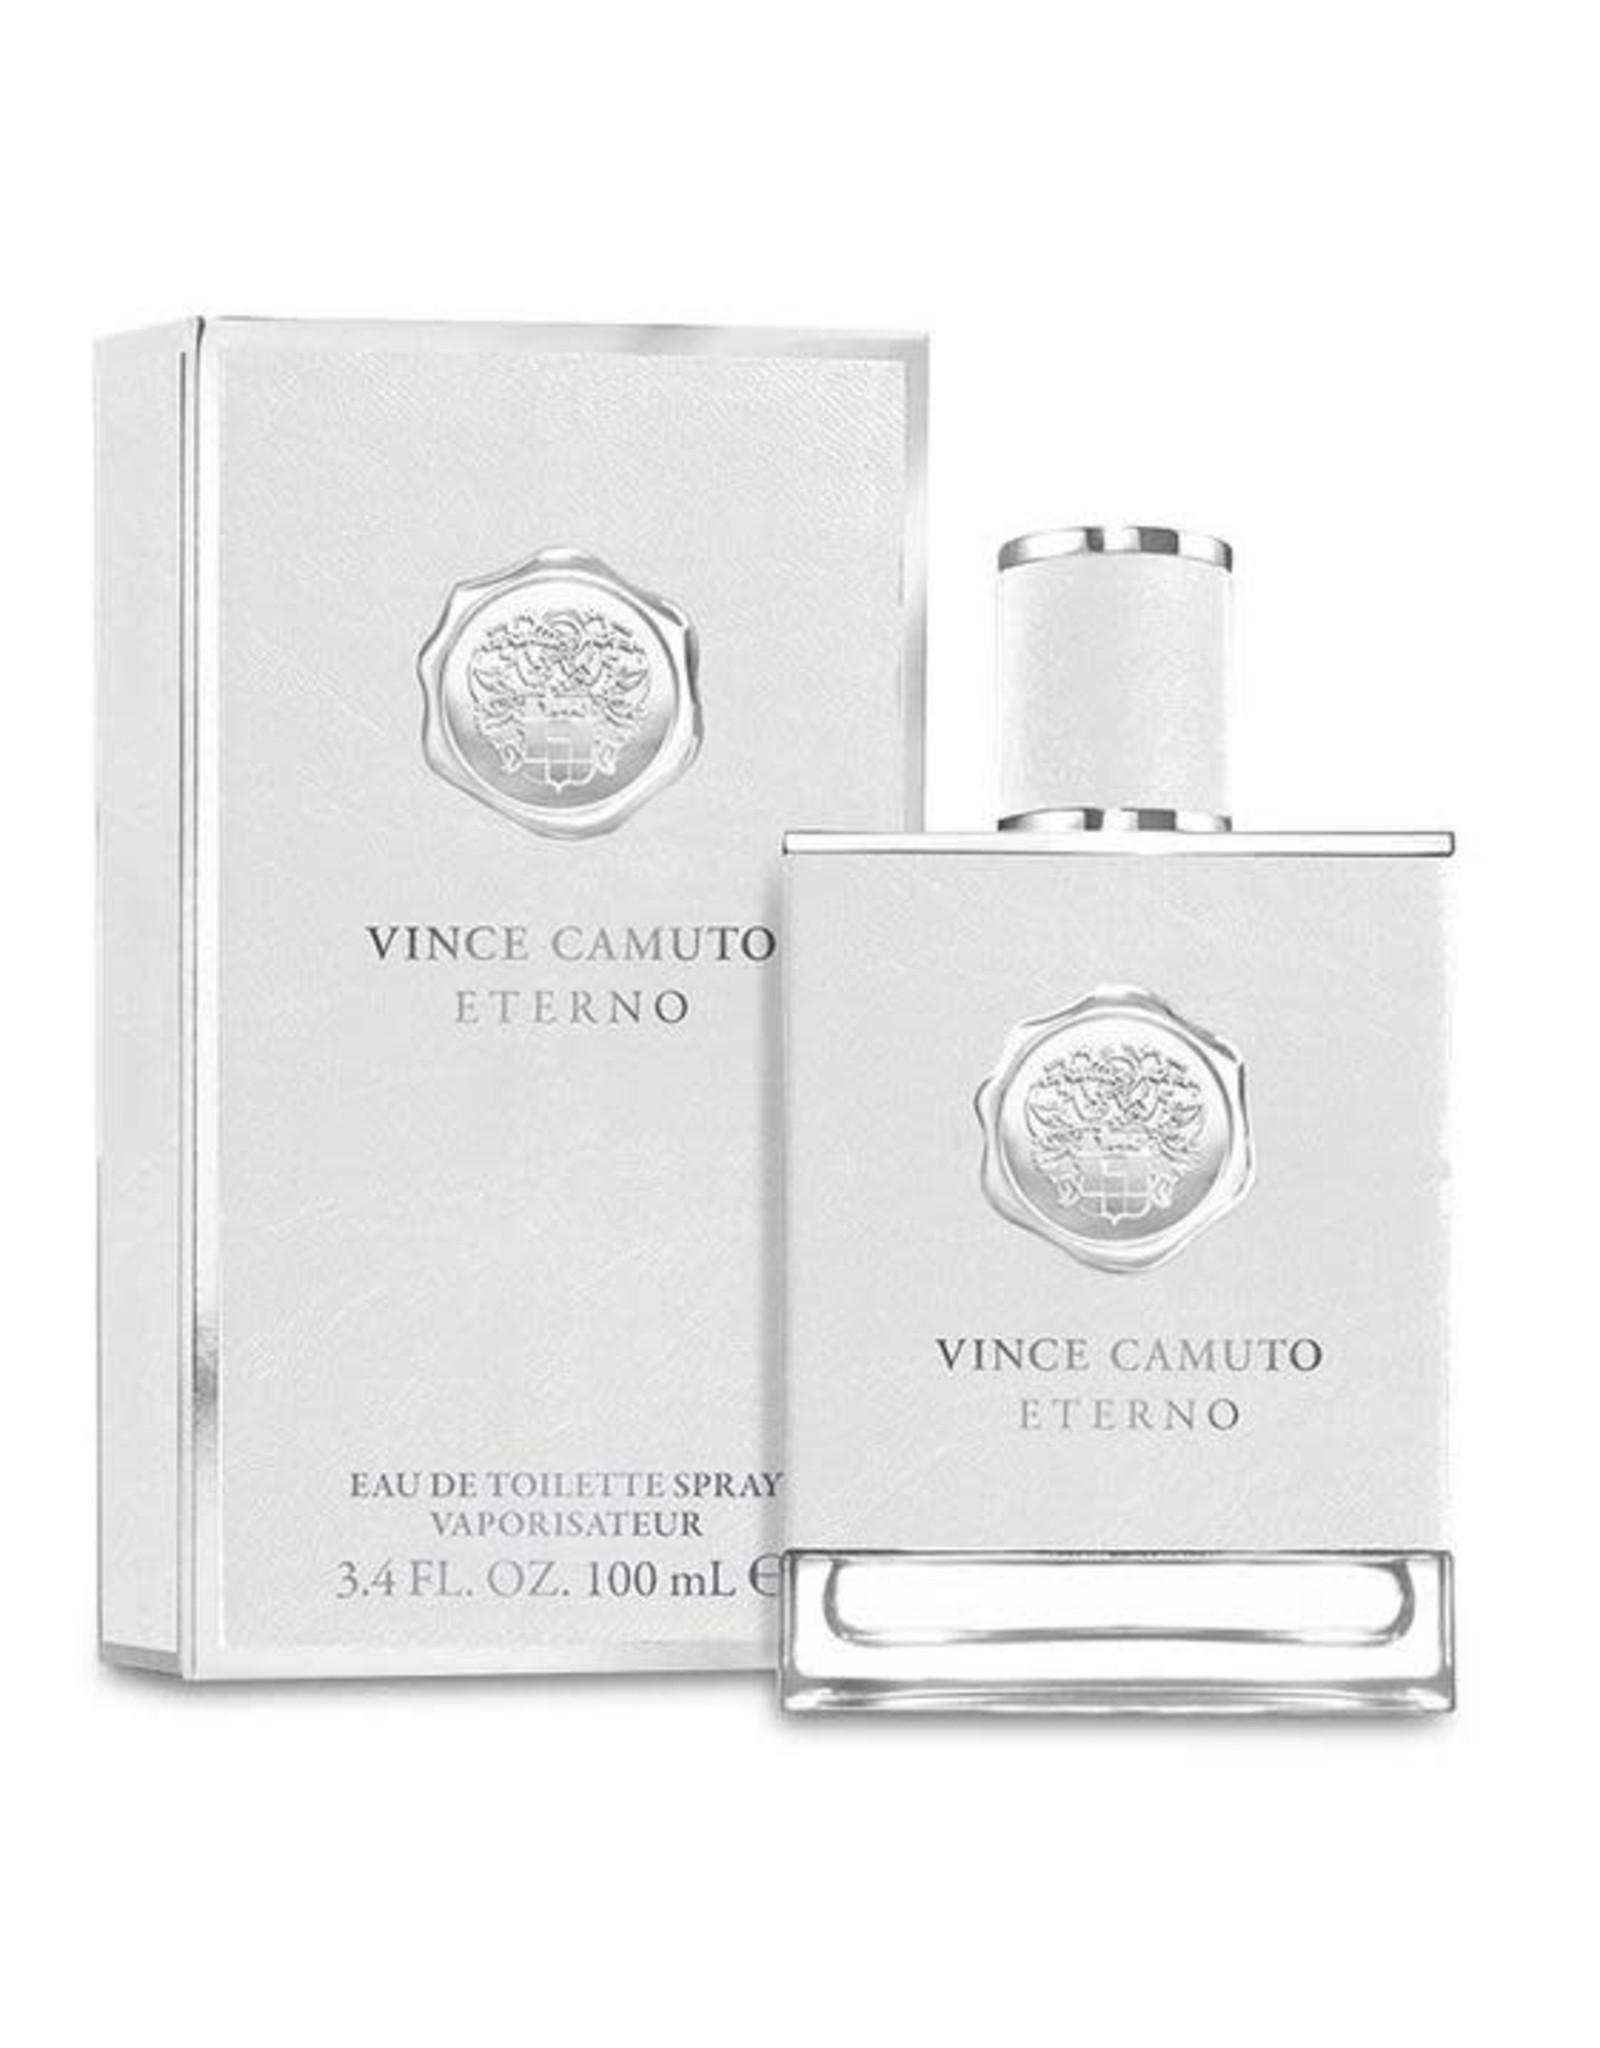 VINCE CAMUTO VINCE CAMUTO ETERNO